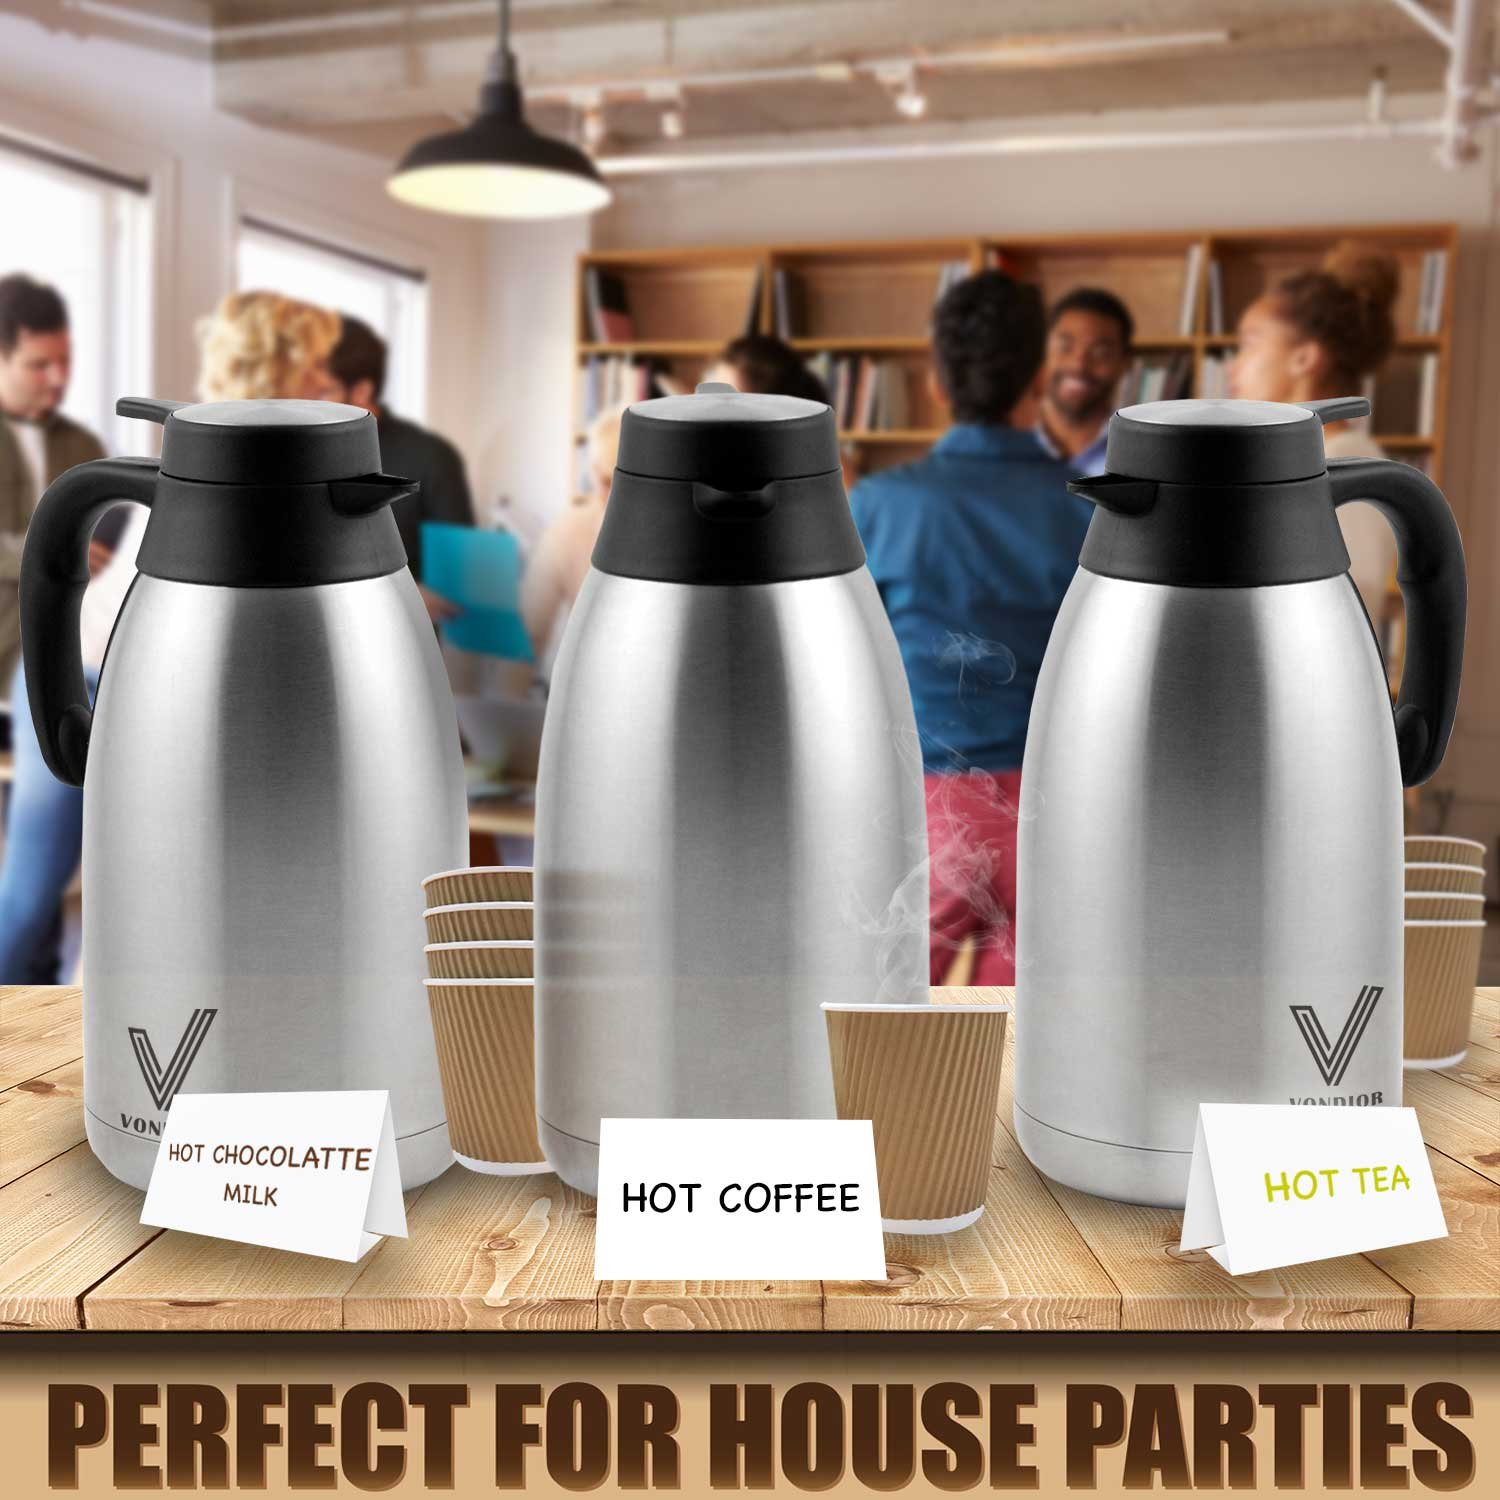 Coffee Thermal Carafe (68 Oz) + Free Brush - Large stainless steel thermos carafes, Keep water hot up to 12 Hours, double walled insulated vacuum flask, Beverage Dispenser By Vondior by Vondior (Image #3)